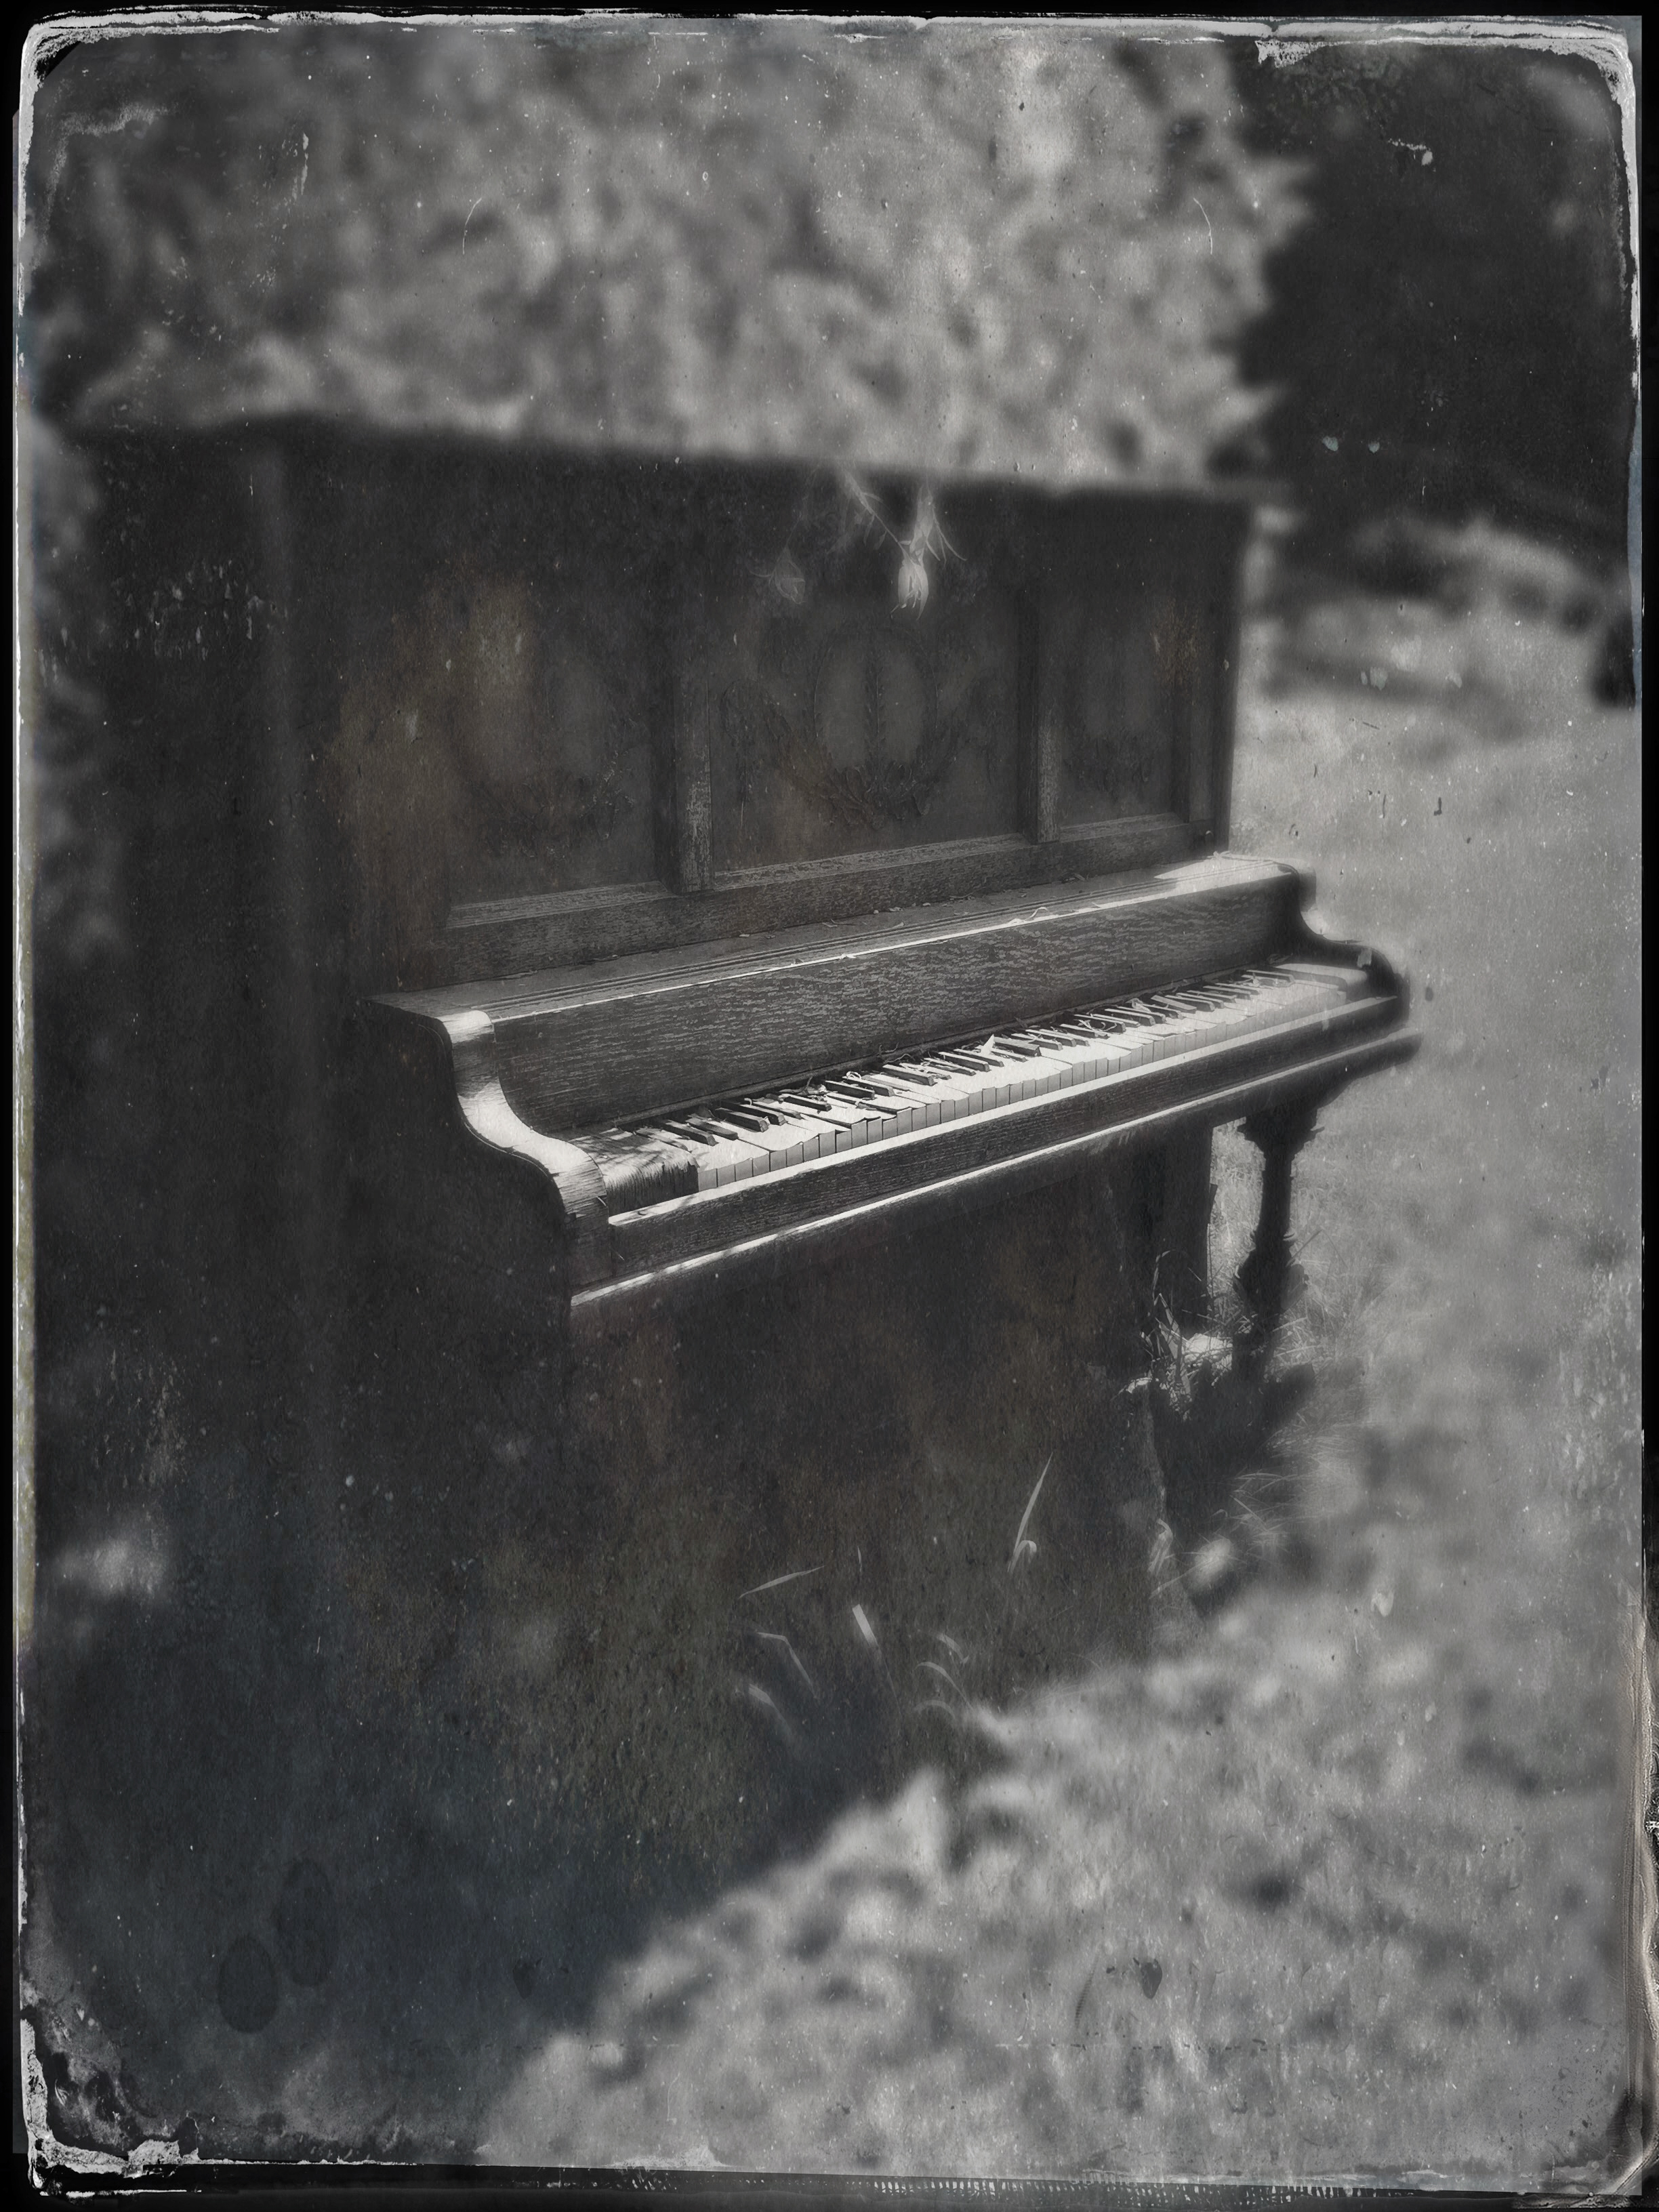 Ivories in the Valley, by Anne Connor. All rights reserved.